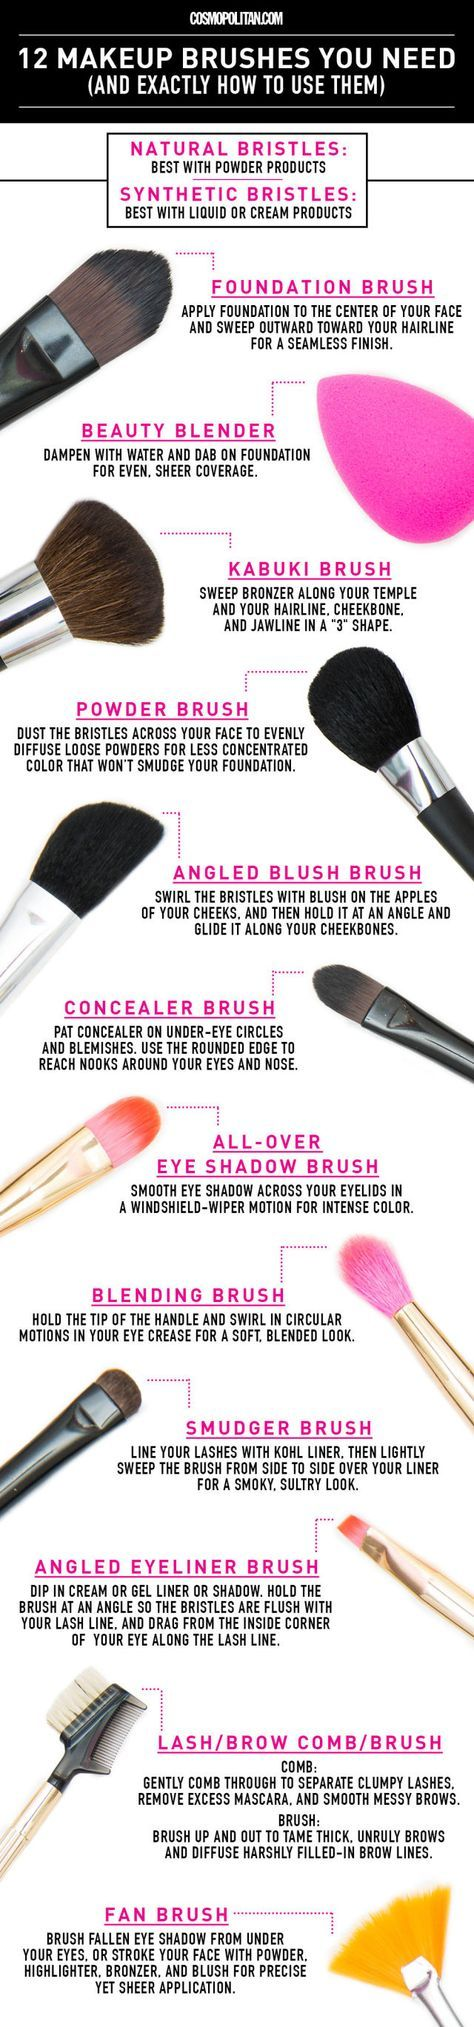 12 Makeup Brushes You Need and Exactly How to Use Them - They come in different shapes and sizes for a reason!